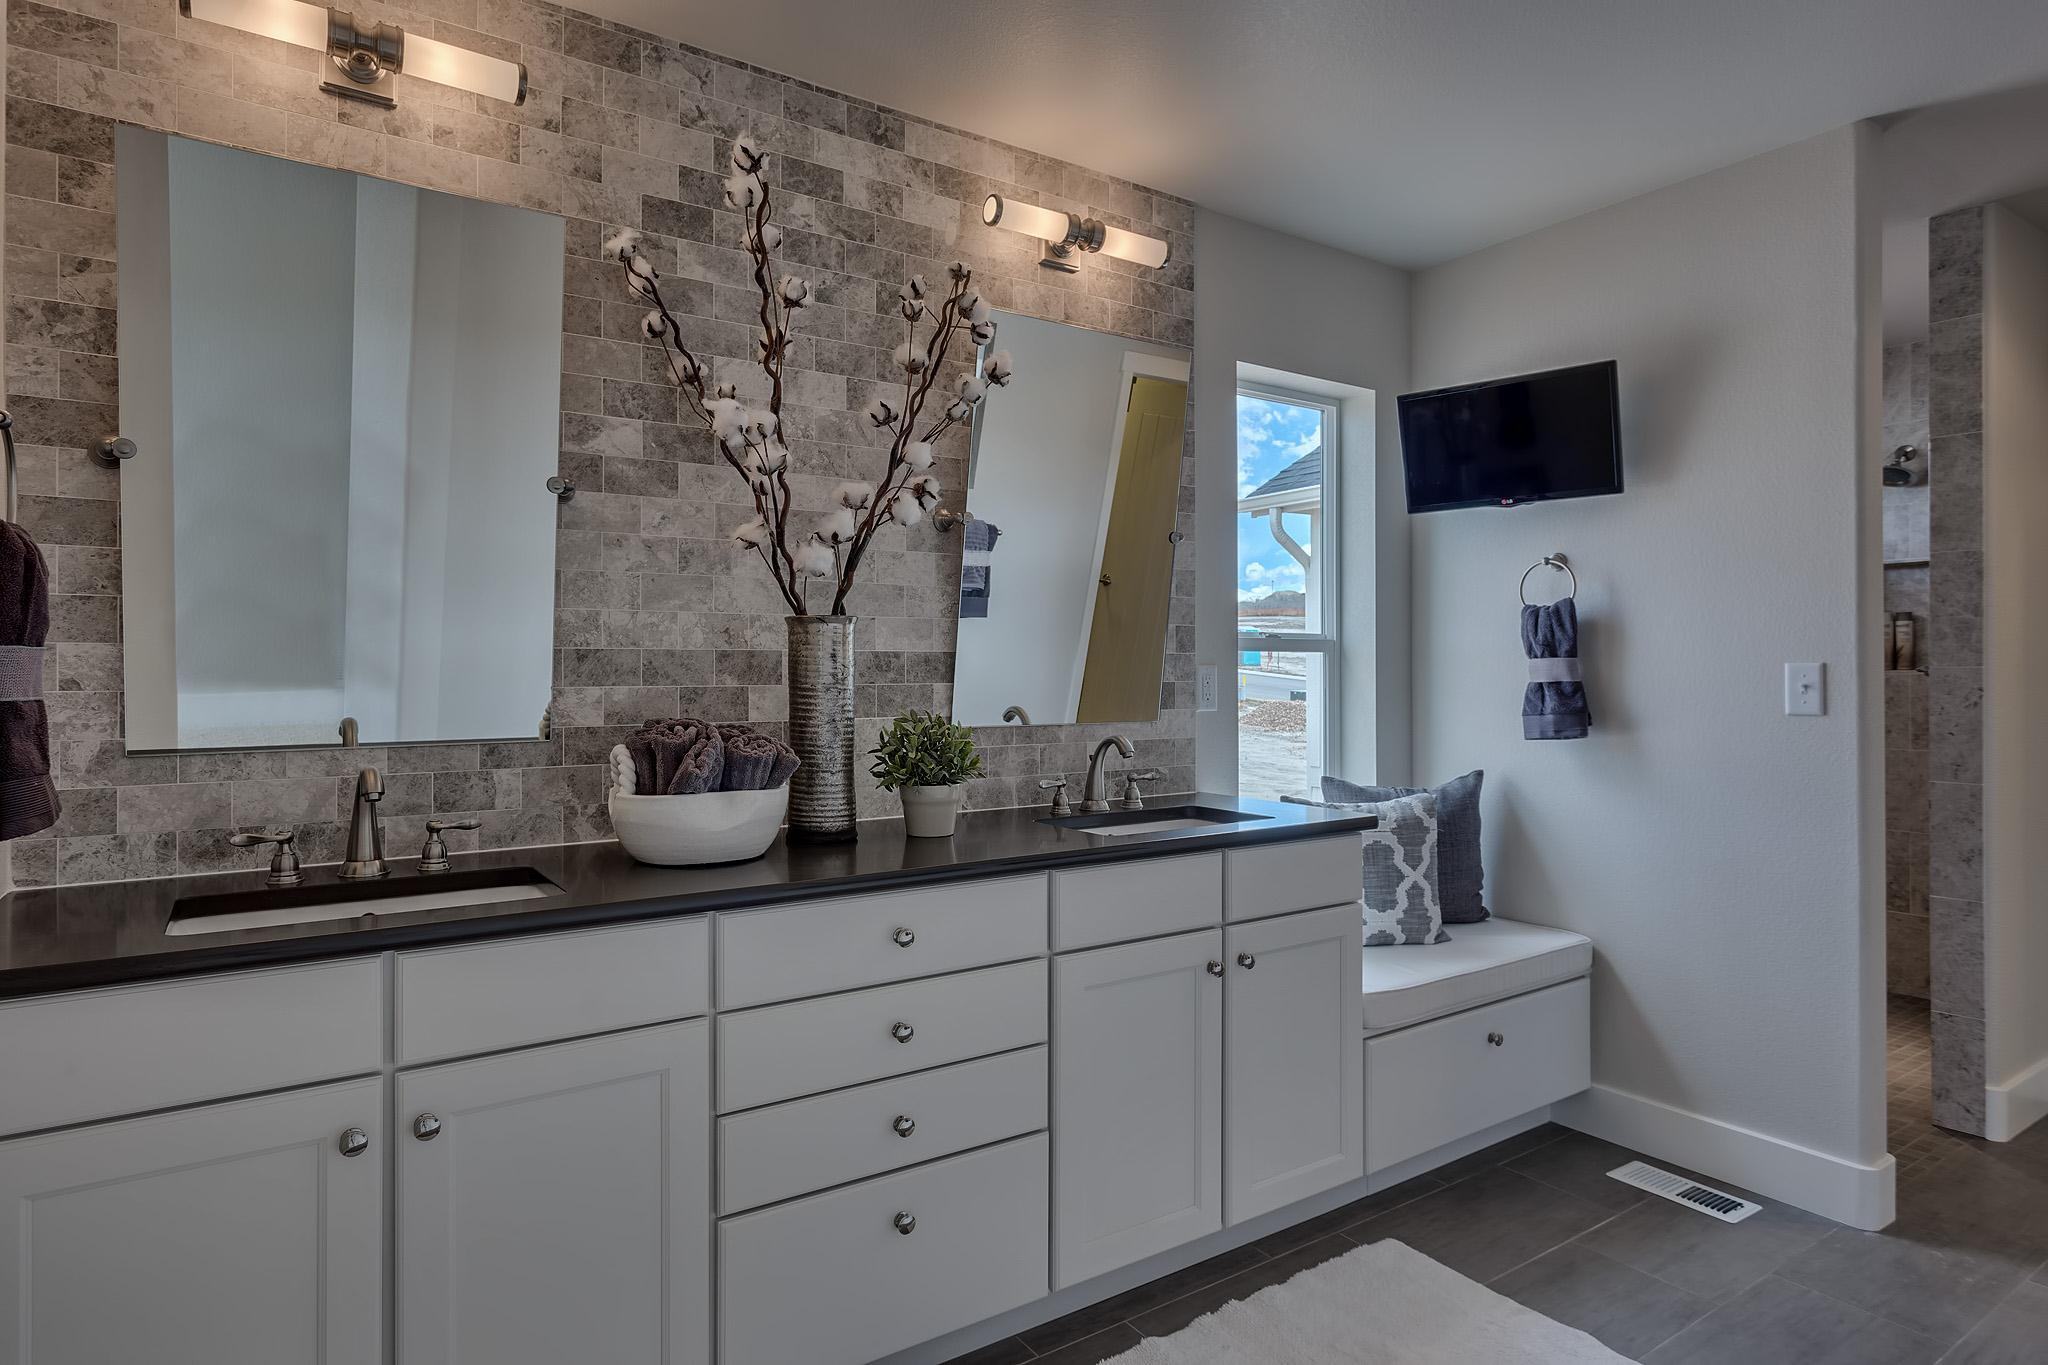 Bathroom featured in the Fresco By Keller Homes, A Toll Bros. Co. in Colorado Springs, CO